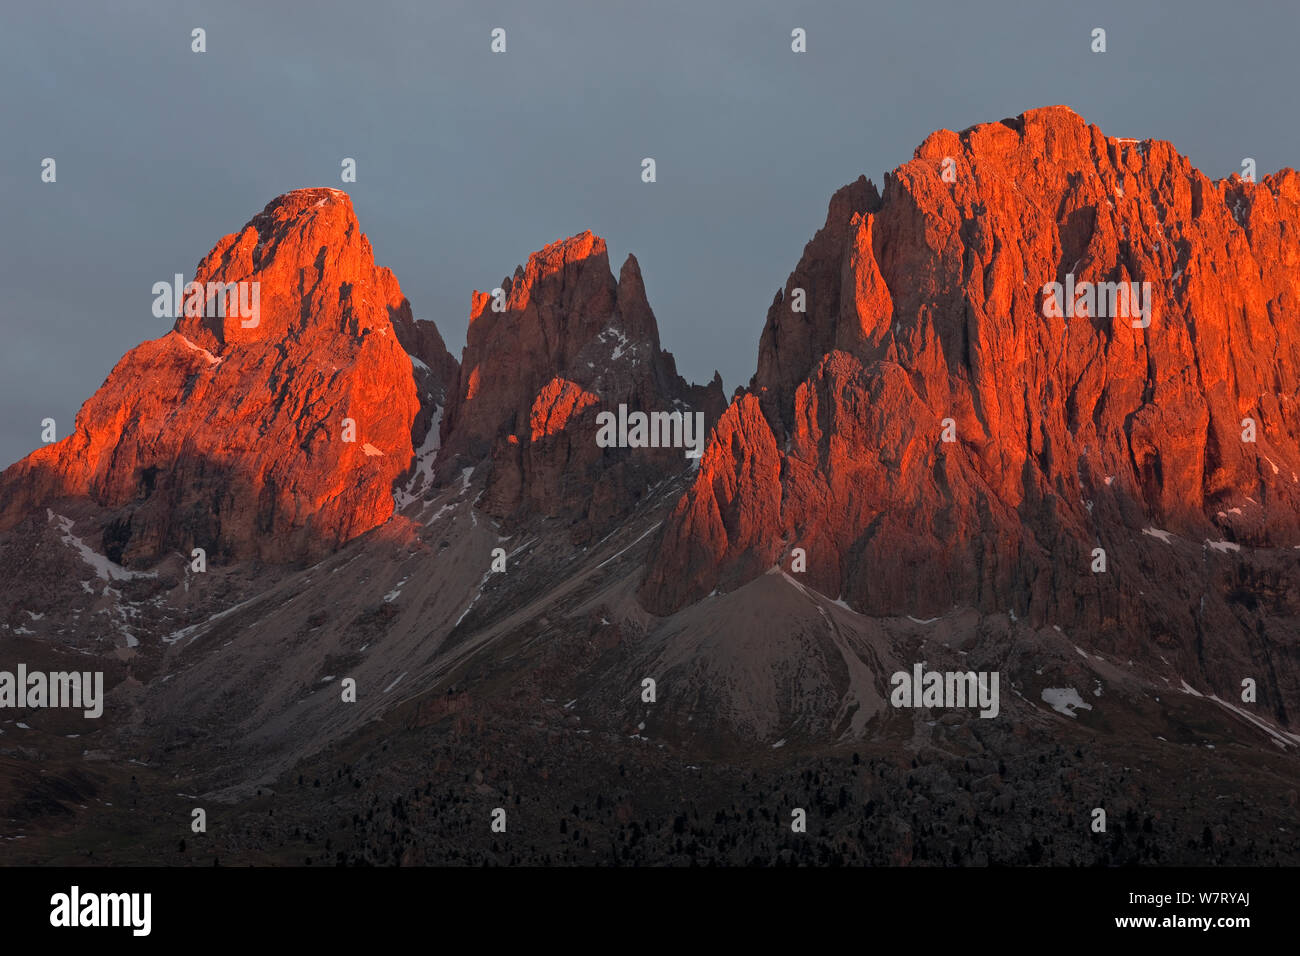 Lankofel Group (with Grohmannspitze, Fuenffingerspitze and Langkofel) in the Dolomites at sunrise, view from Sella Pass, Italy, May. Stock Photo